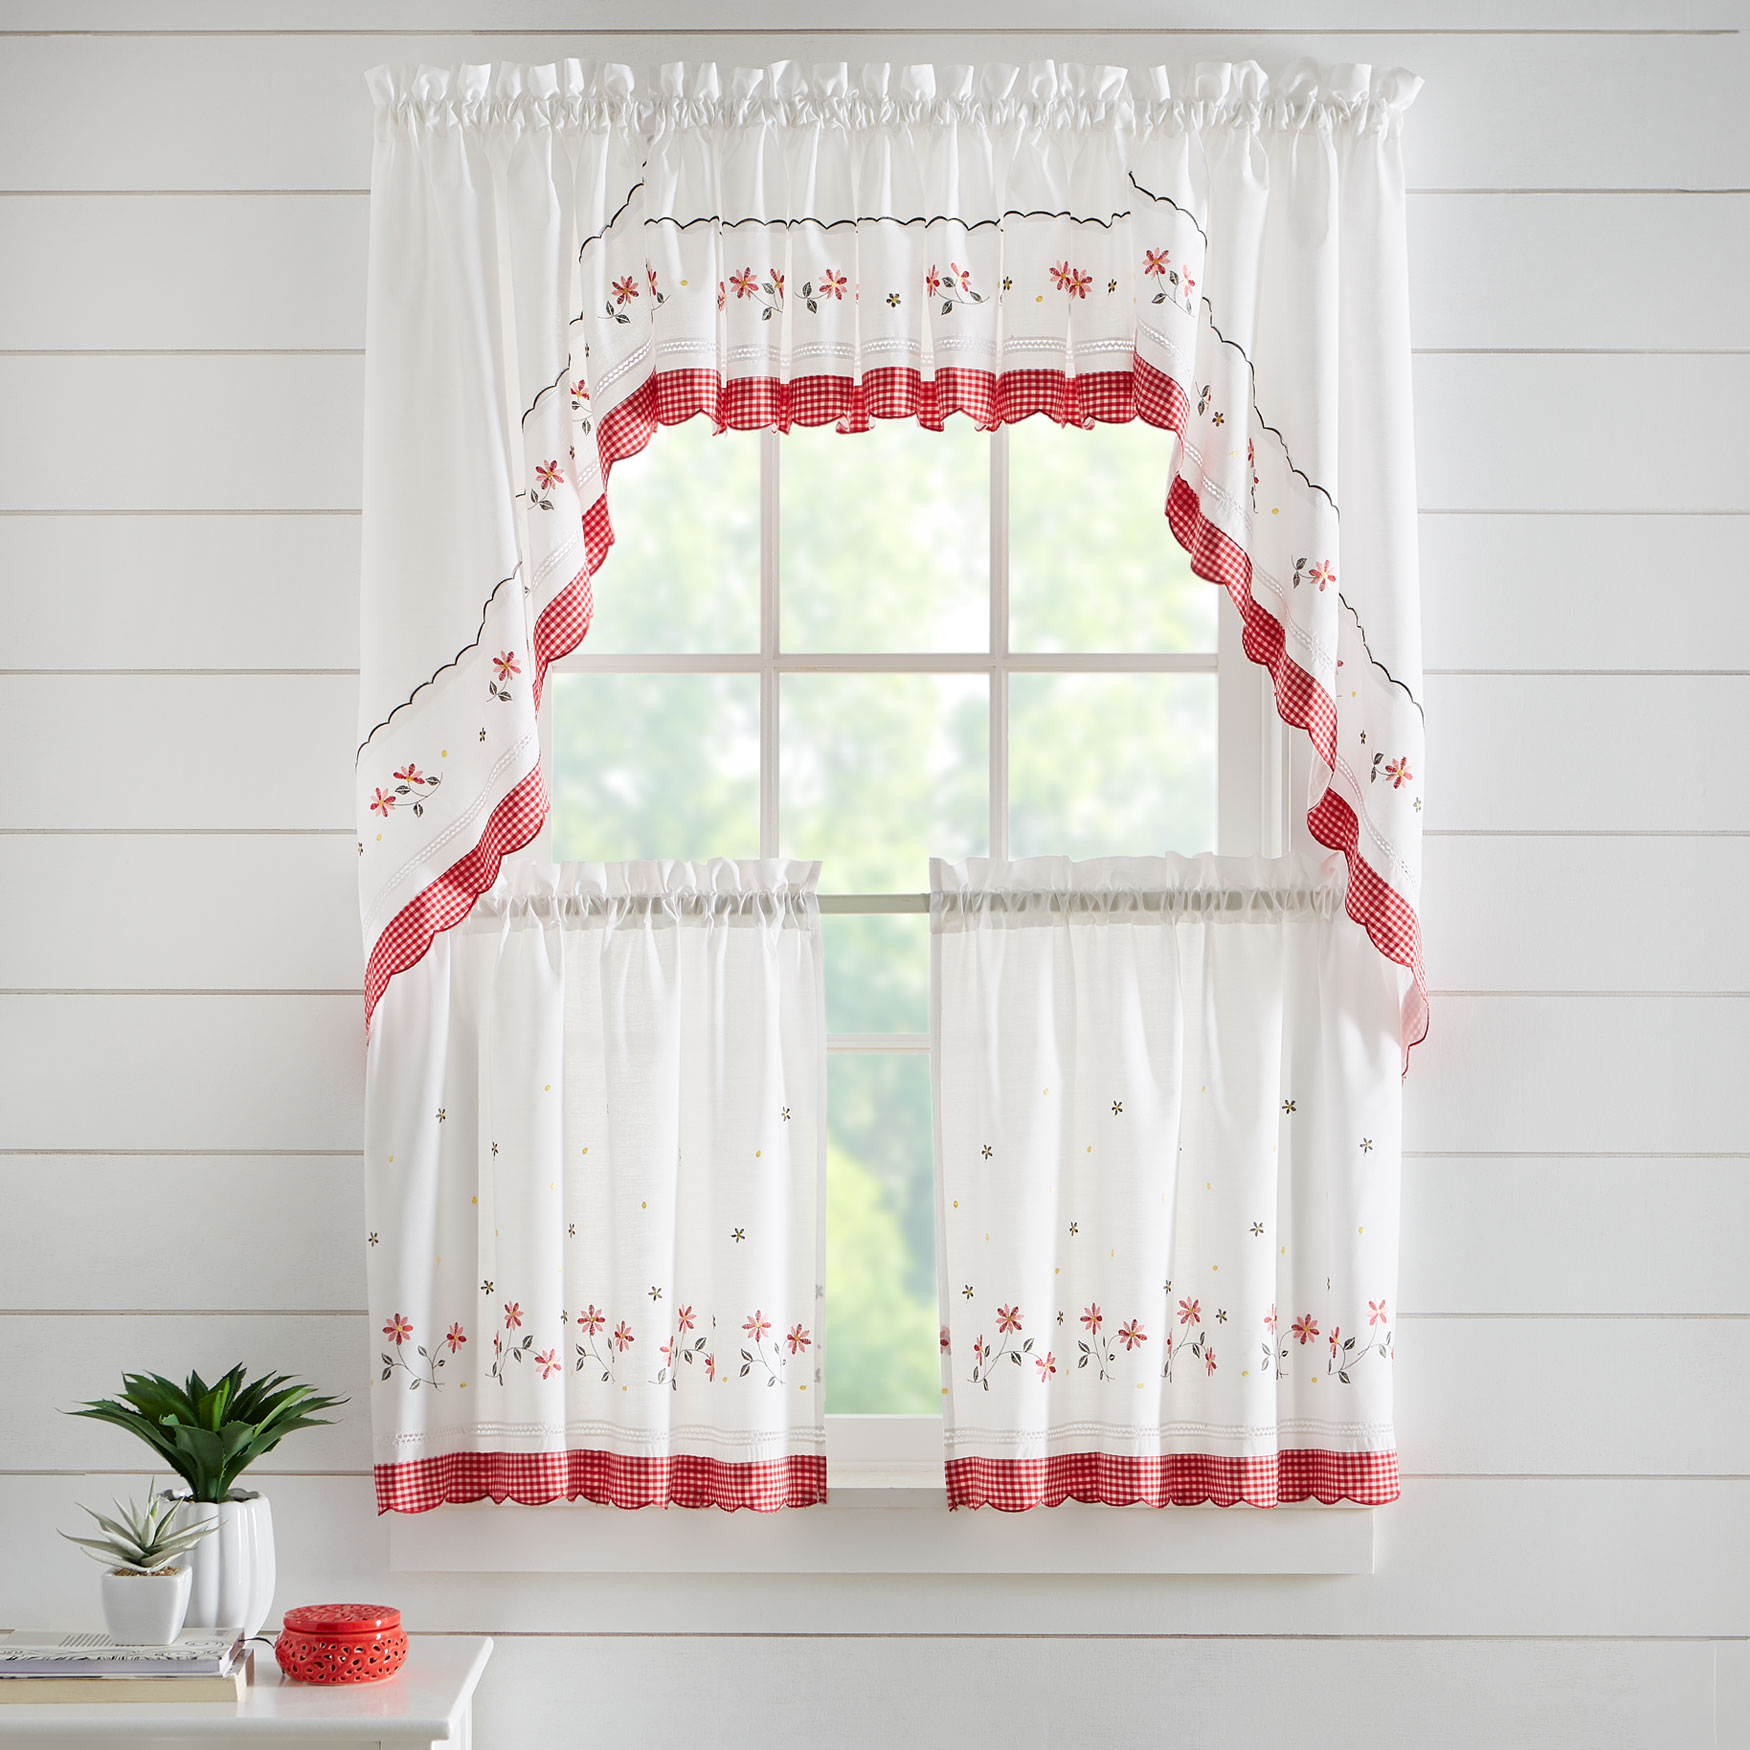 Gingham Curtain Collection Set,